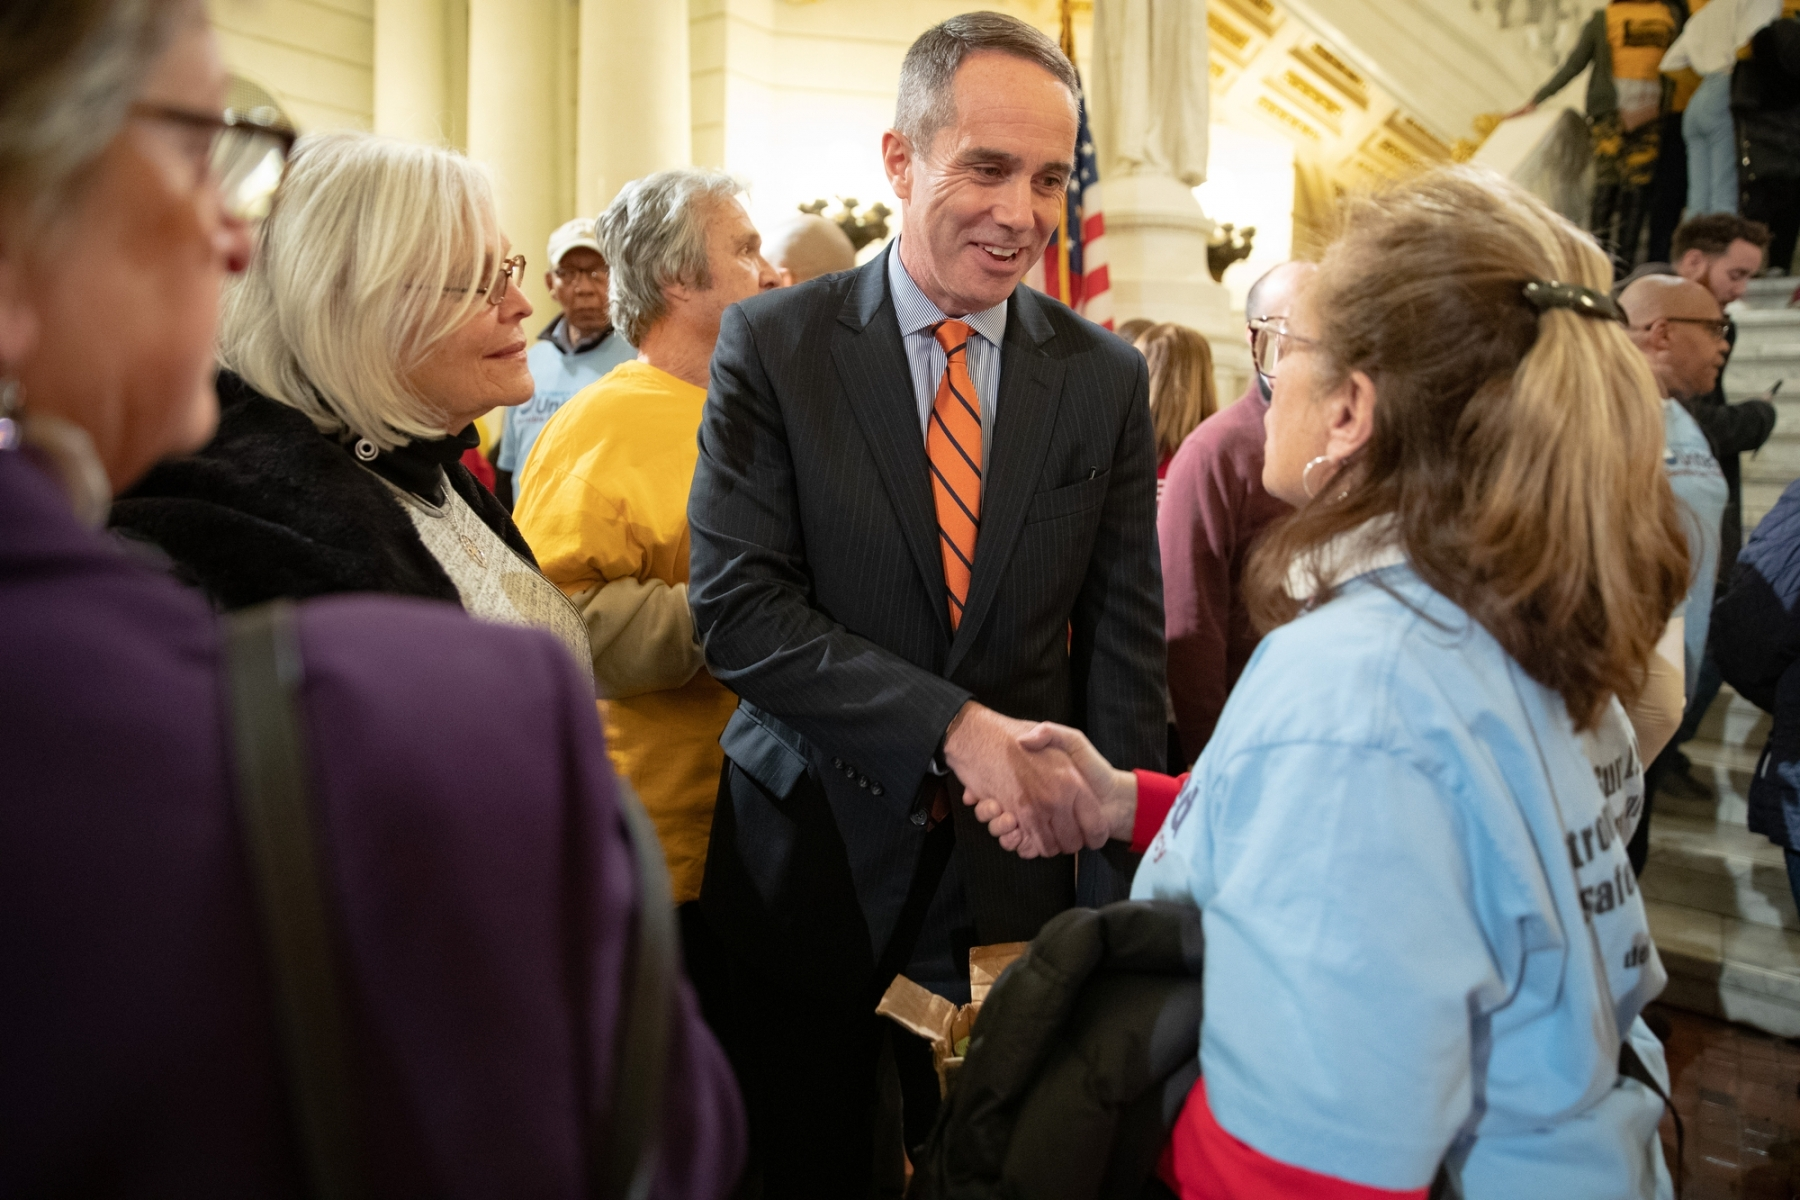 January 29, 2019: Senator Steve Santarsiero joins CeaseFirePA at the Harrisburg Rotunda for a Rally For Action on gun violence in PA.